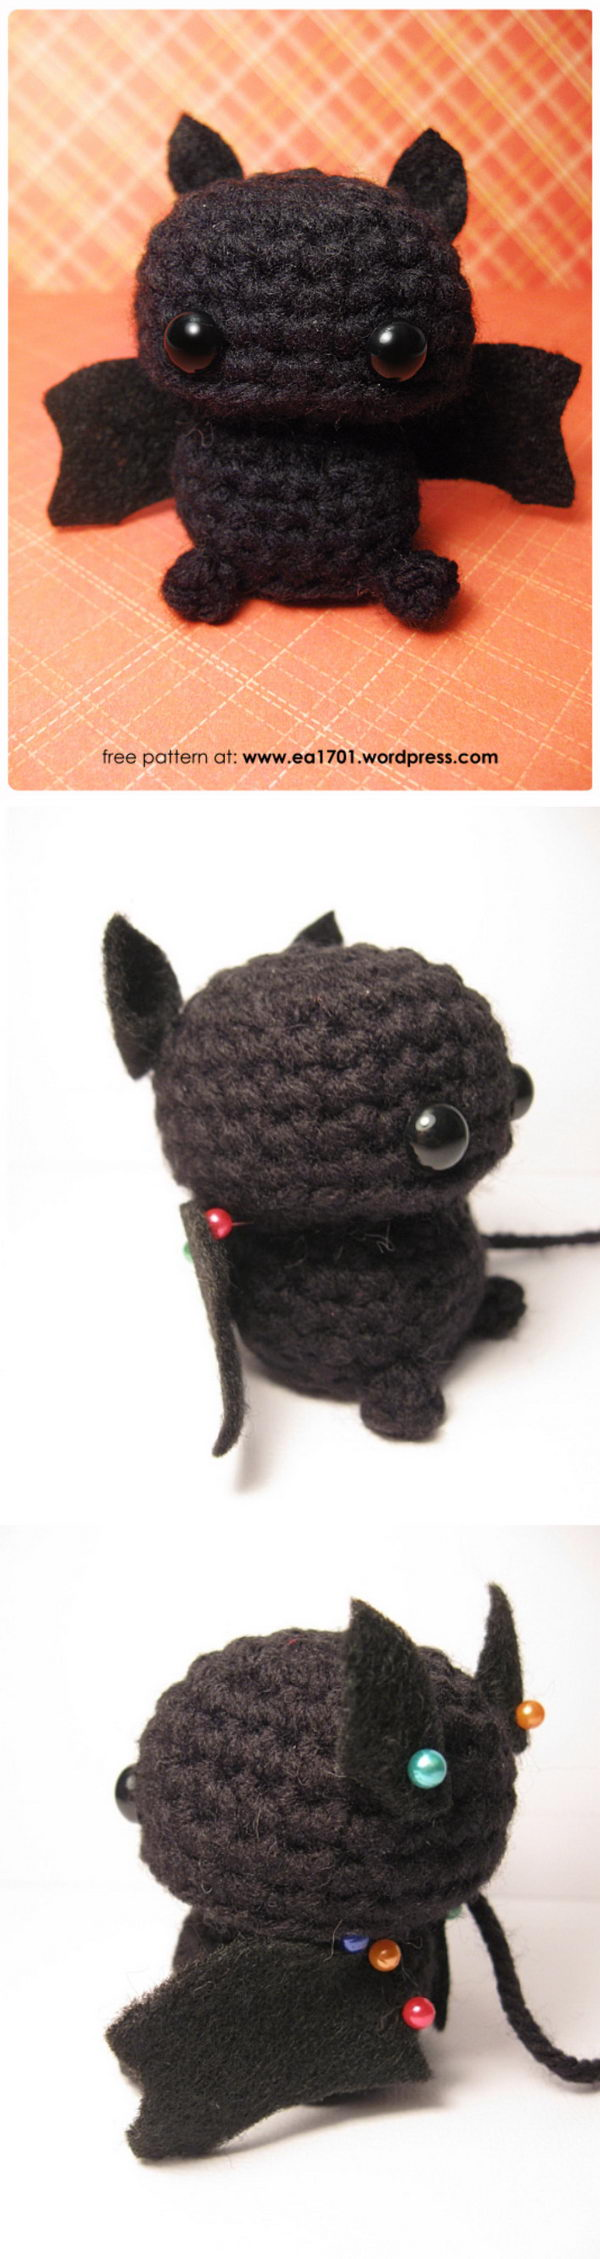 Crochet Bitty Bat.